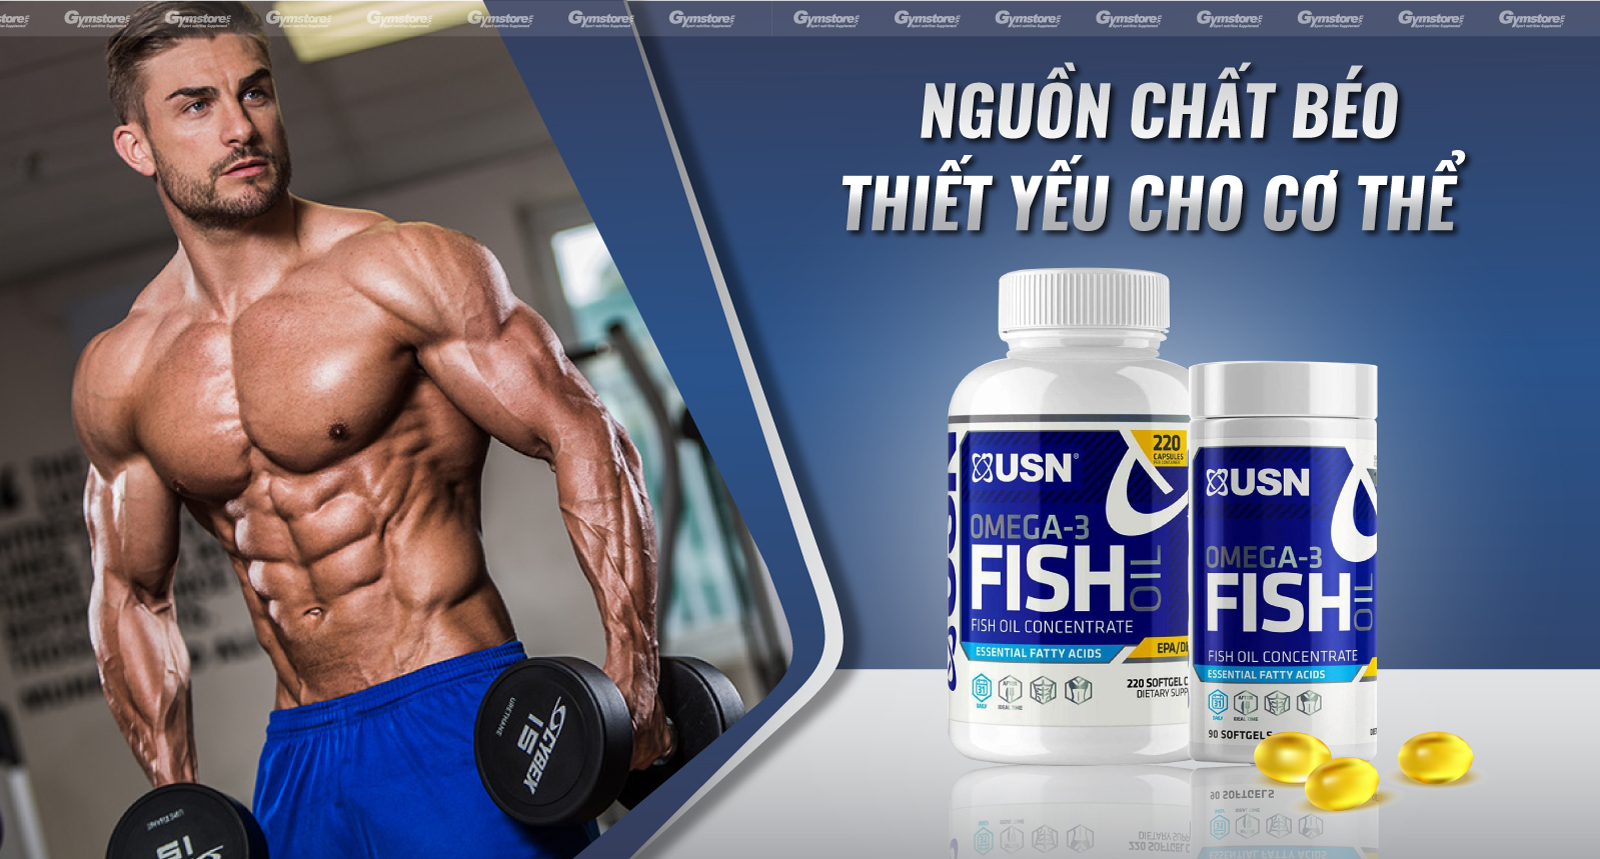 US-Omega-3-FishOil-nguon-chat-beo-thiet-yeu-gymstore